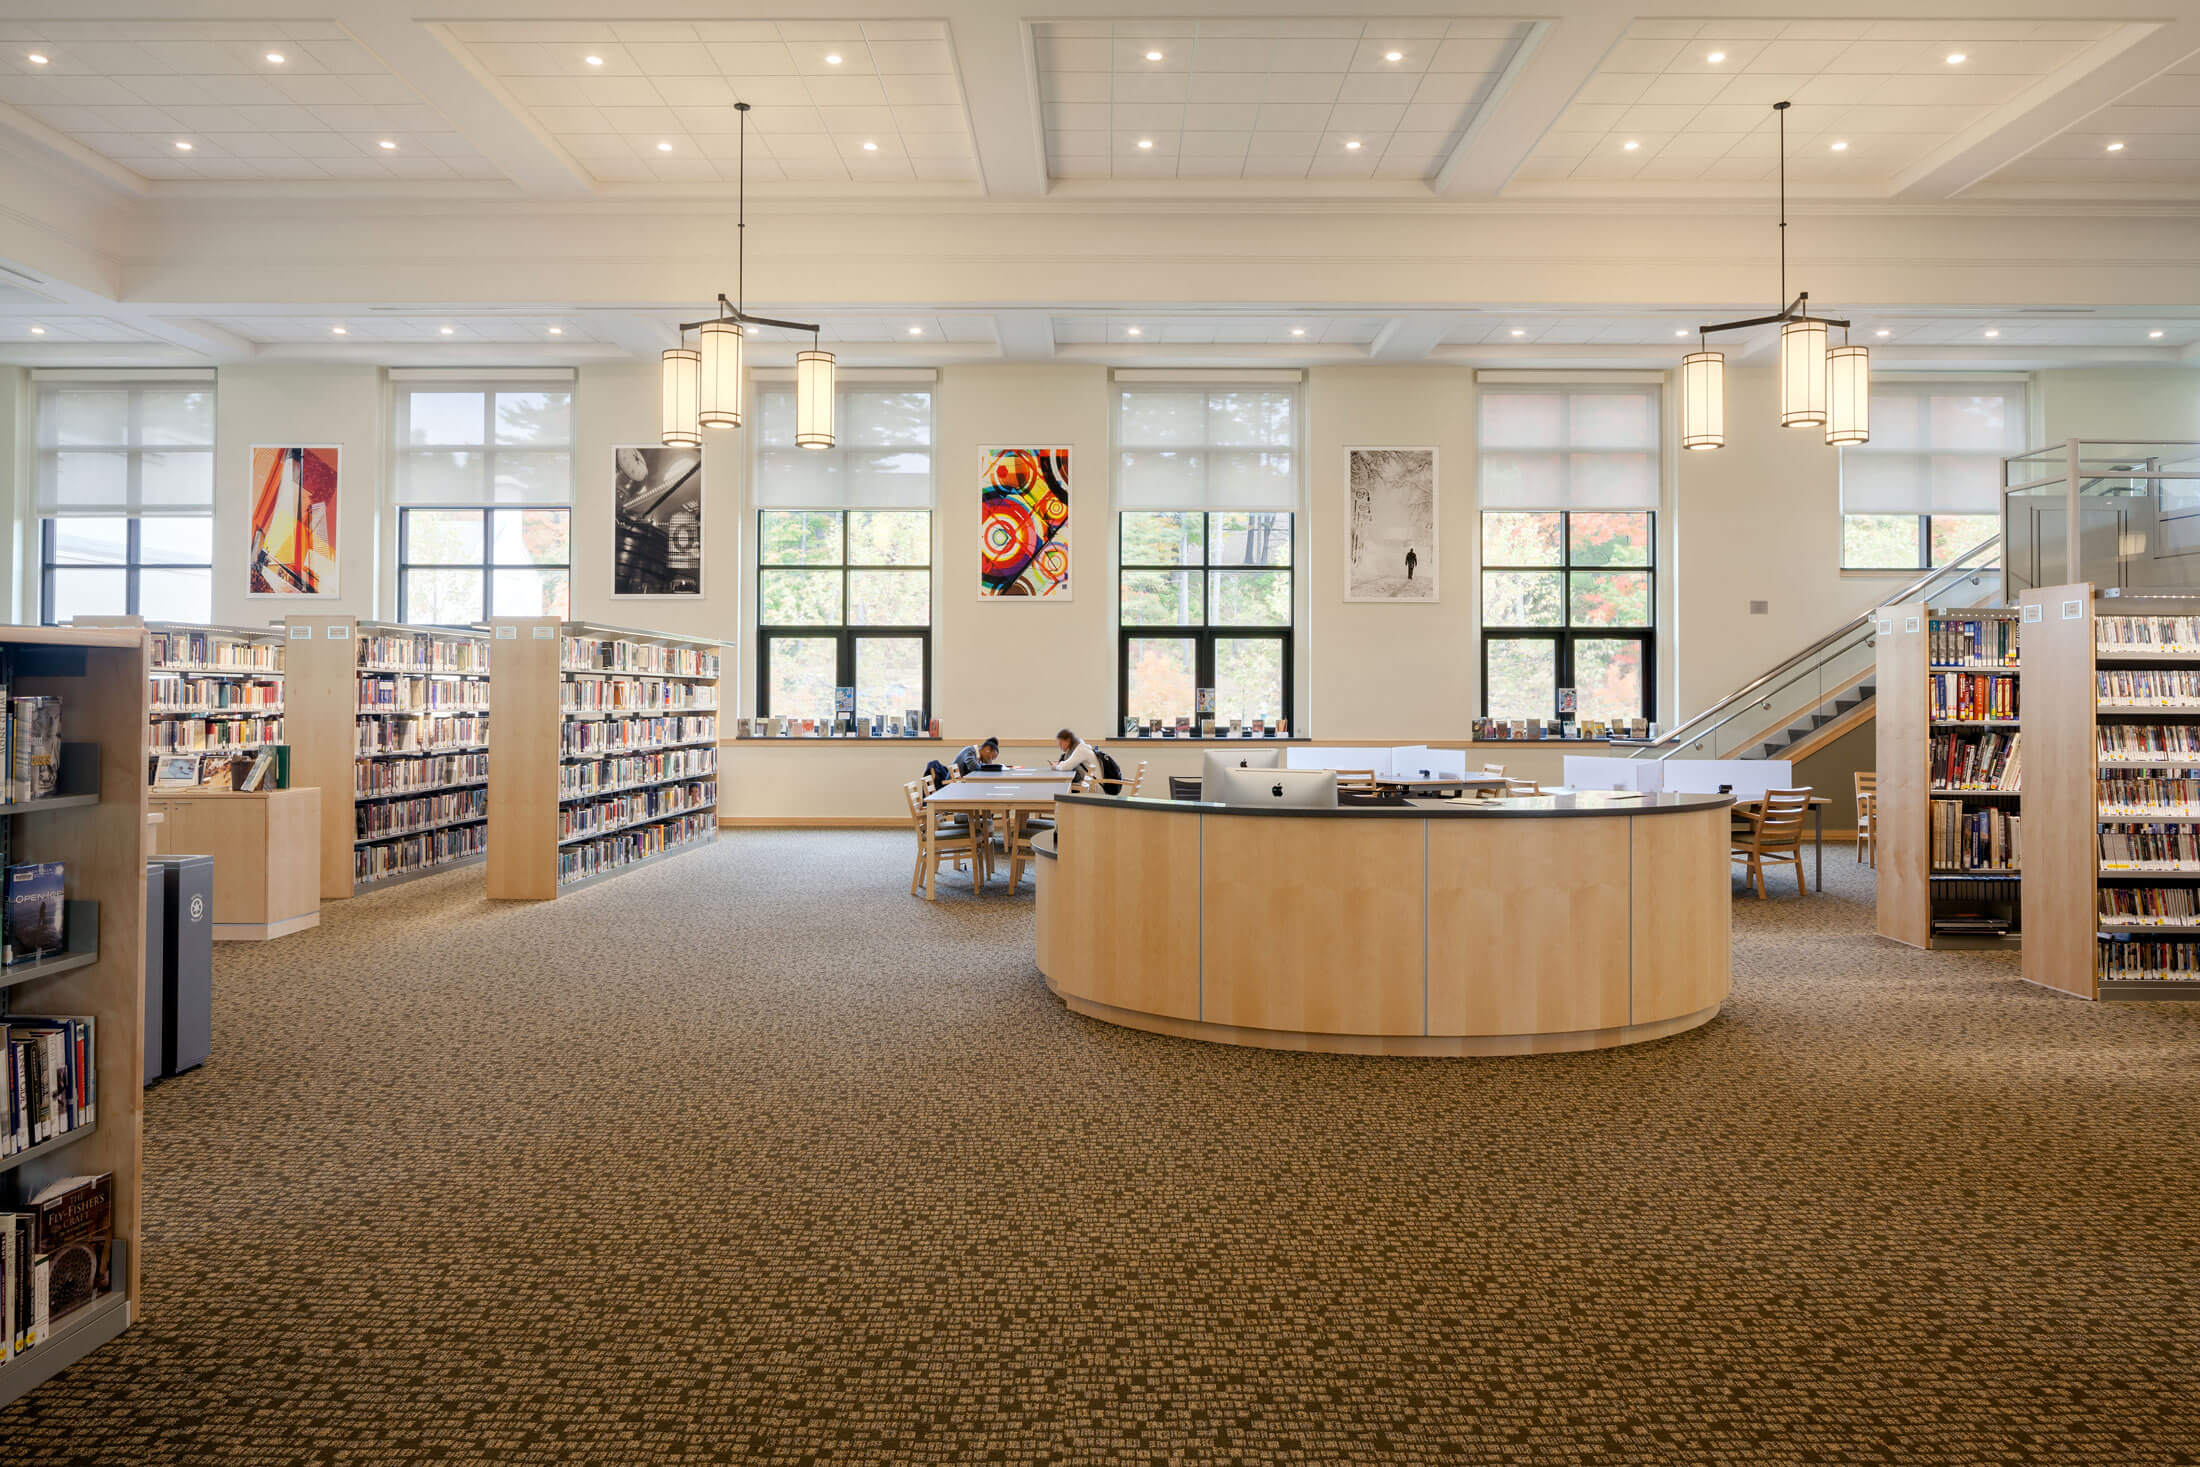 Interior view of Geier Library at Berkshire school, showing the high ceilings that speak to the building's former use as a gymnasium